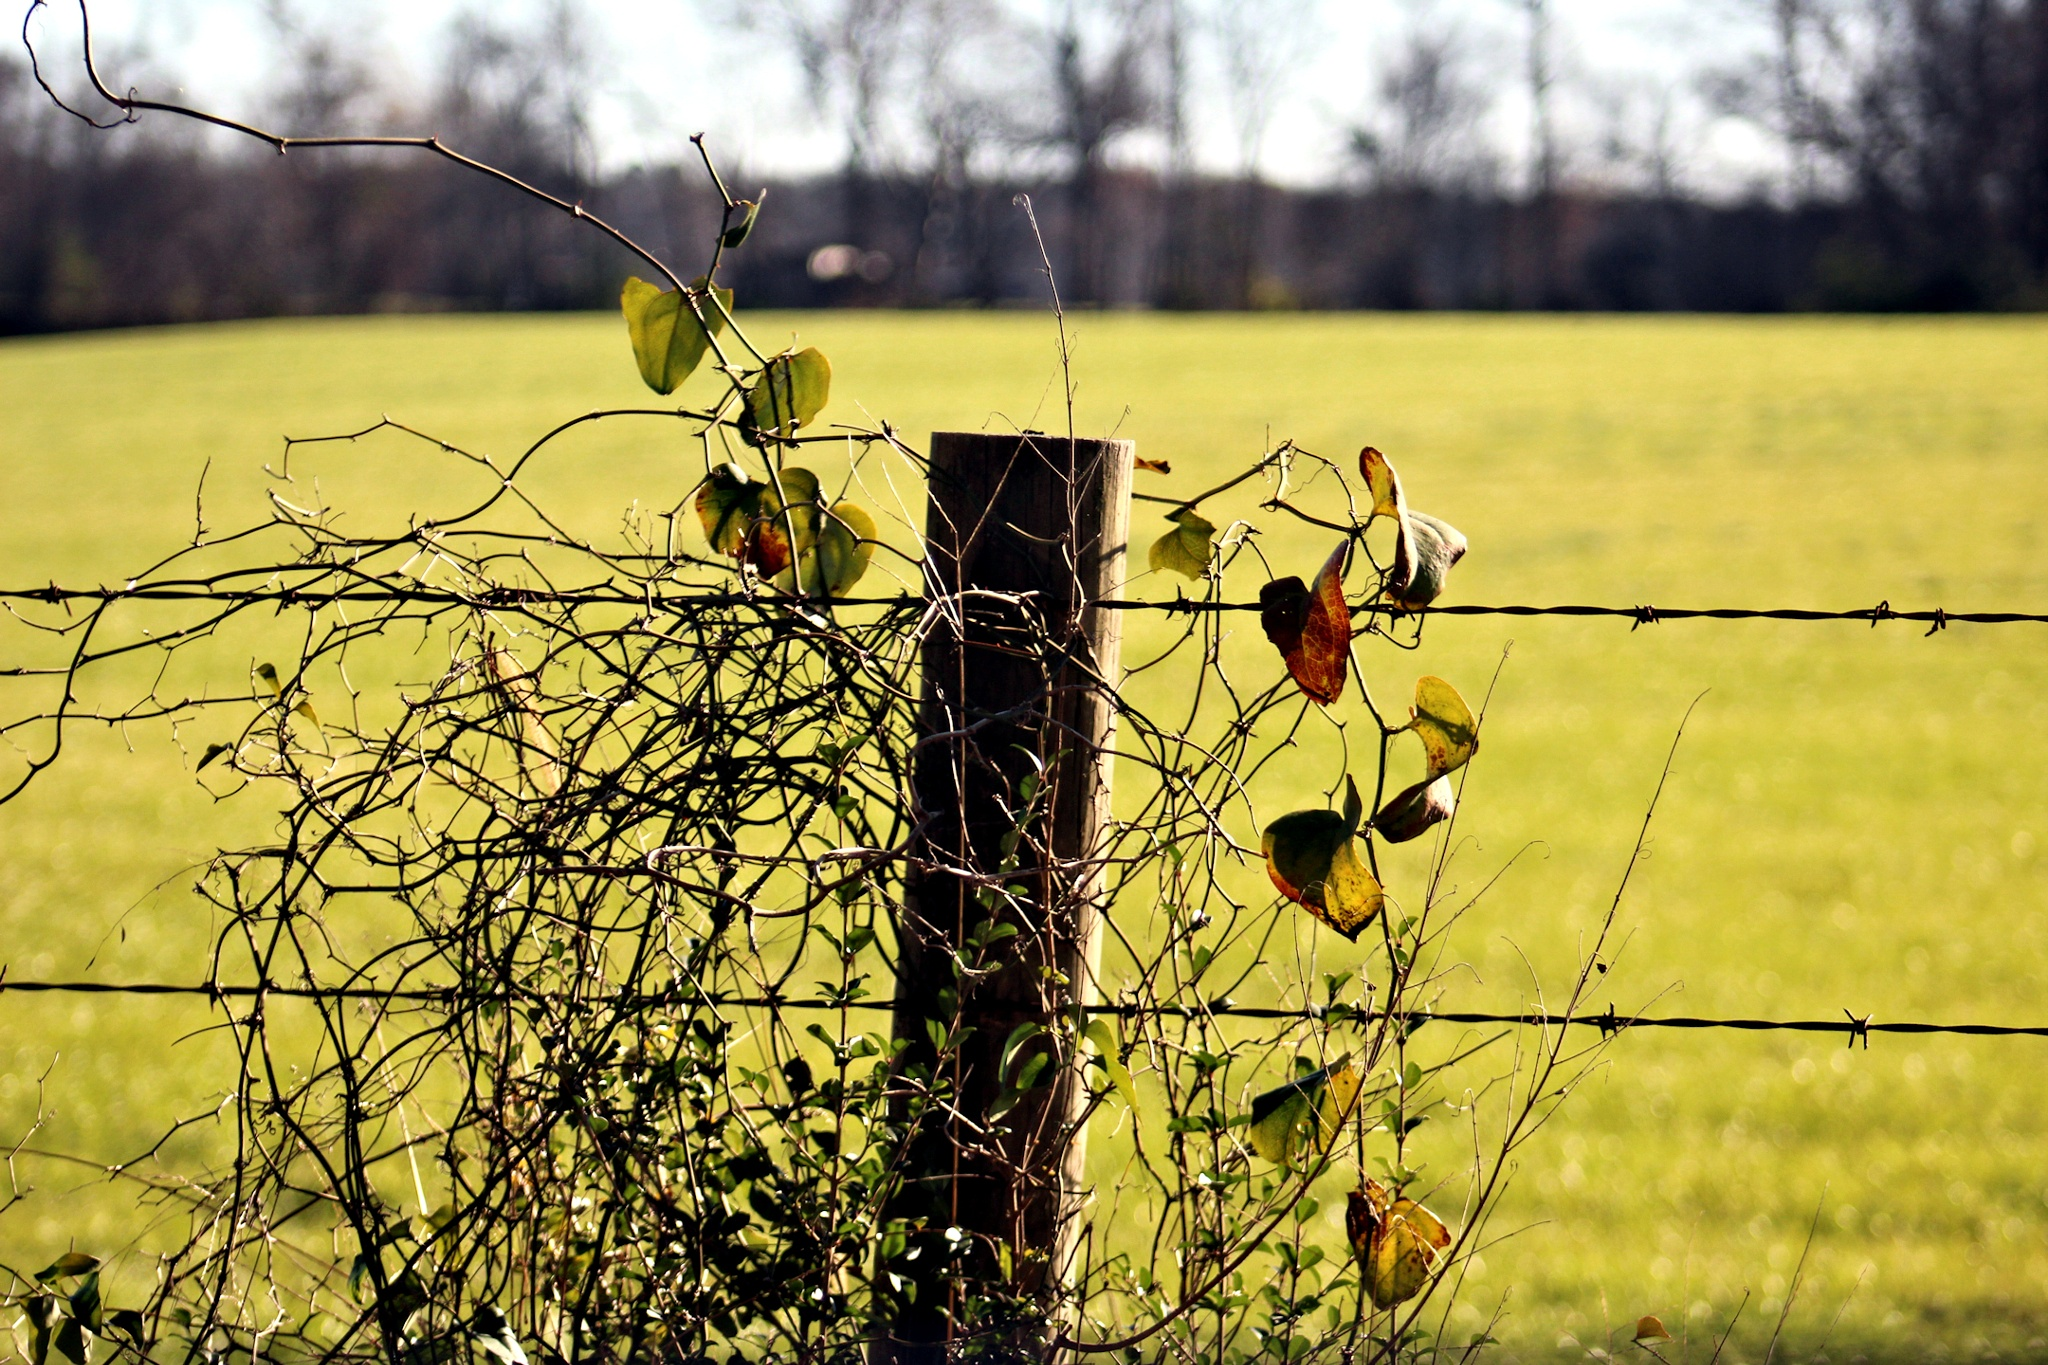 Fence Post and Barbed Wire by dubblybubbly51